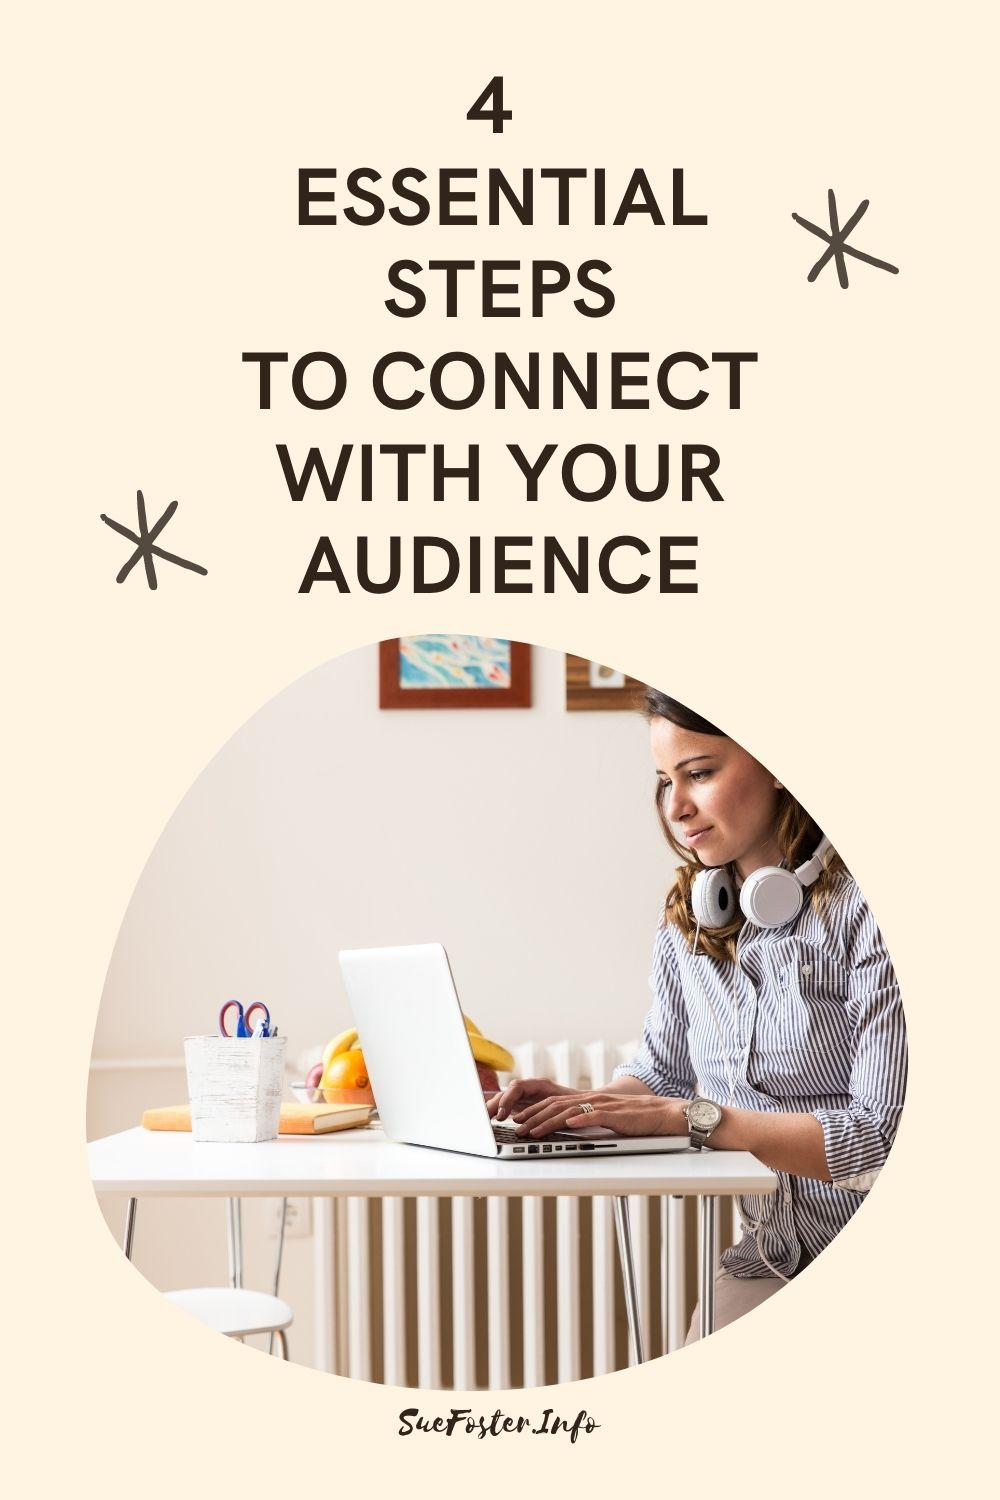 4 top tips to help you connect with your audience.